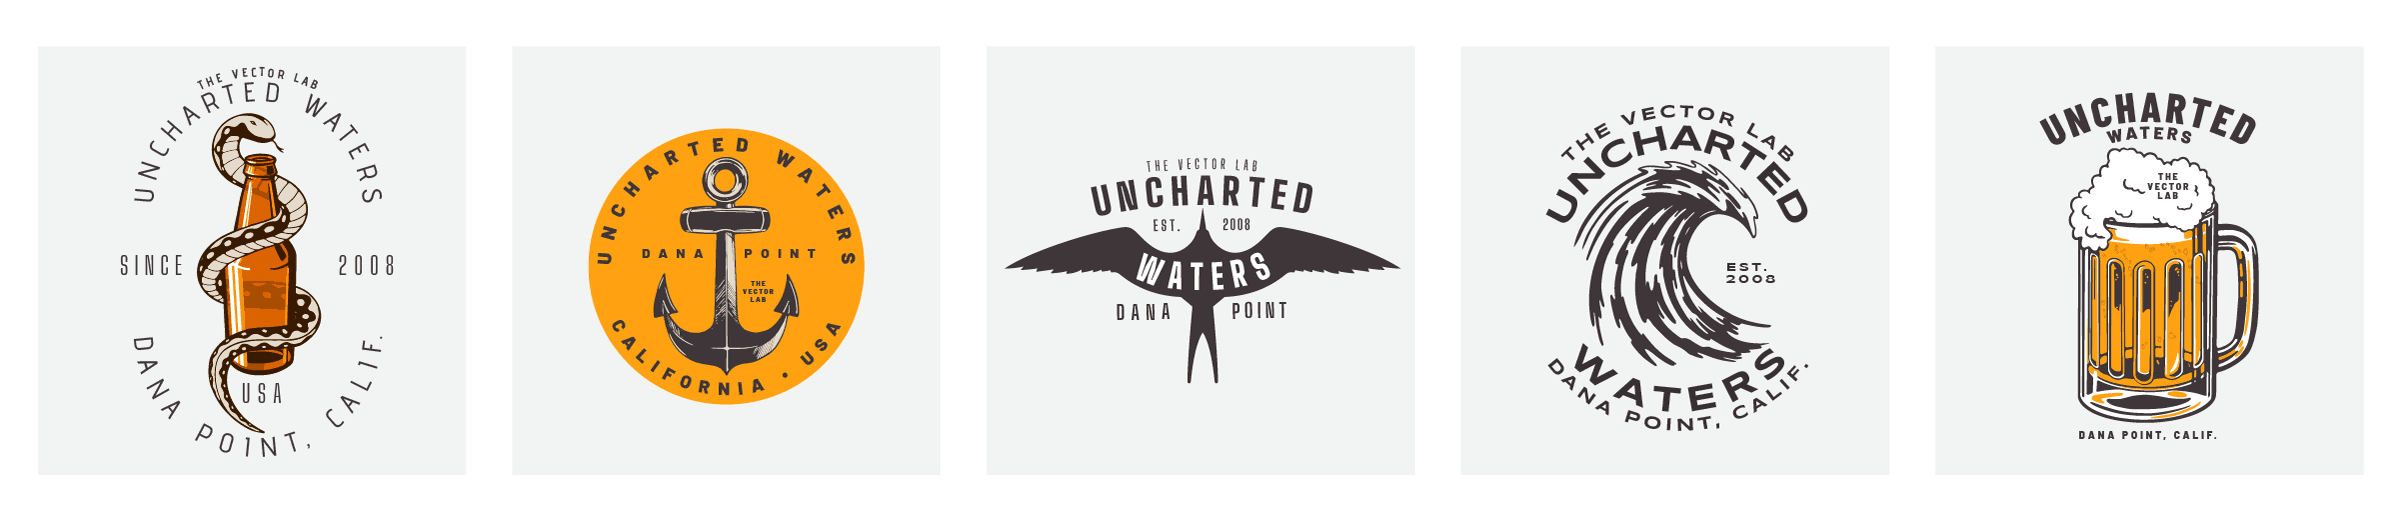 Bonus Designs - Uncharted Waters